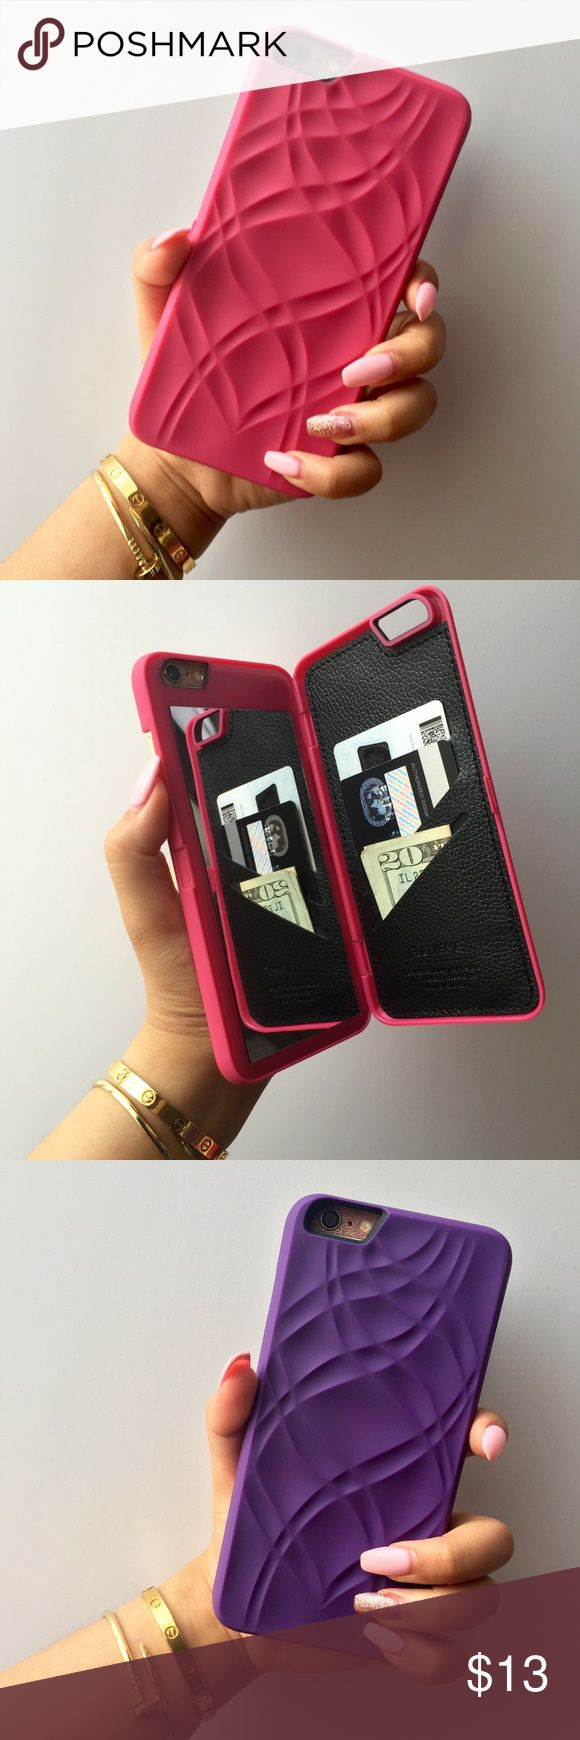 Wallet Mirror Case 100% brand new & high quality Easy snap on/off installation, providing easy access to functions Protects the sides & back of your phone Protection from damage & scratches Anti-fingerprint PU case, featuring a unique design Hidden compartment for credit cards & cash (3 card slots) Perfect view mirror Available in pink, purple & black Accessories Phone Cases